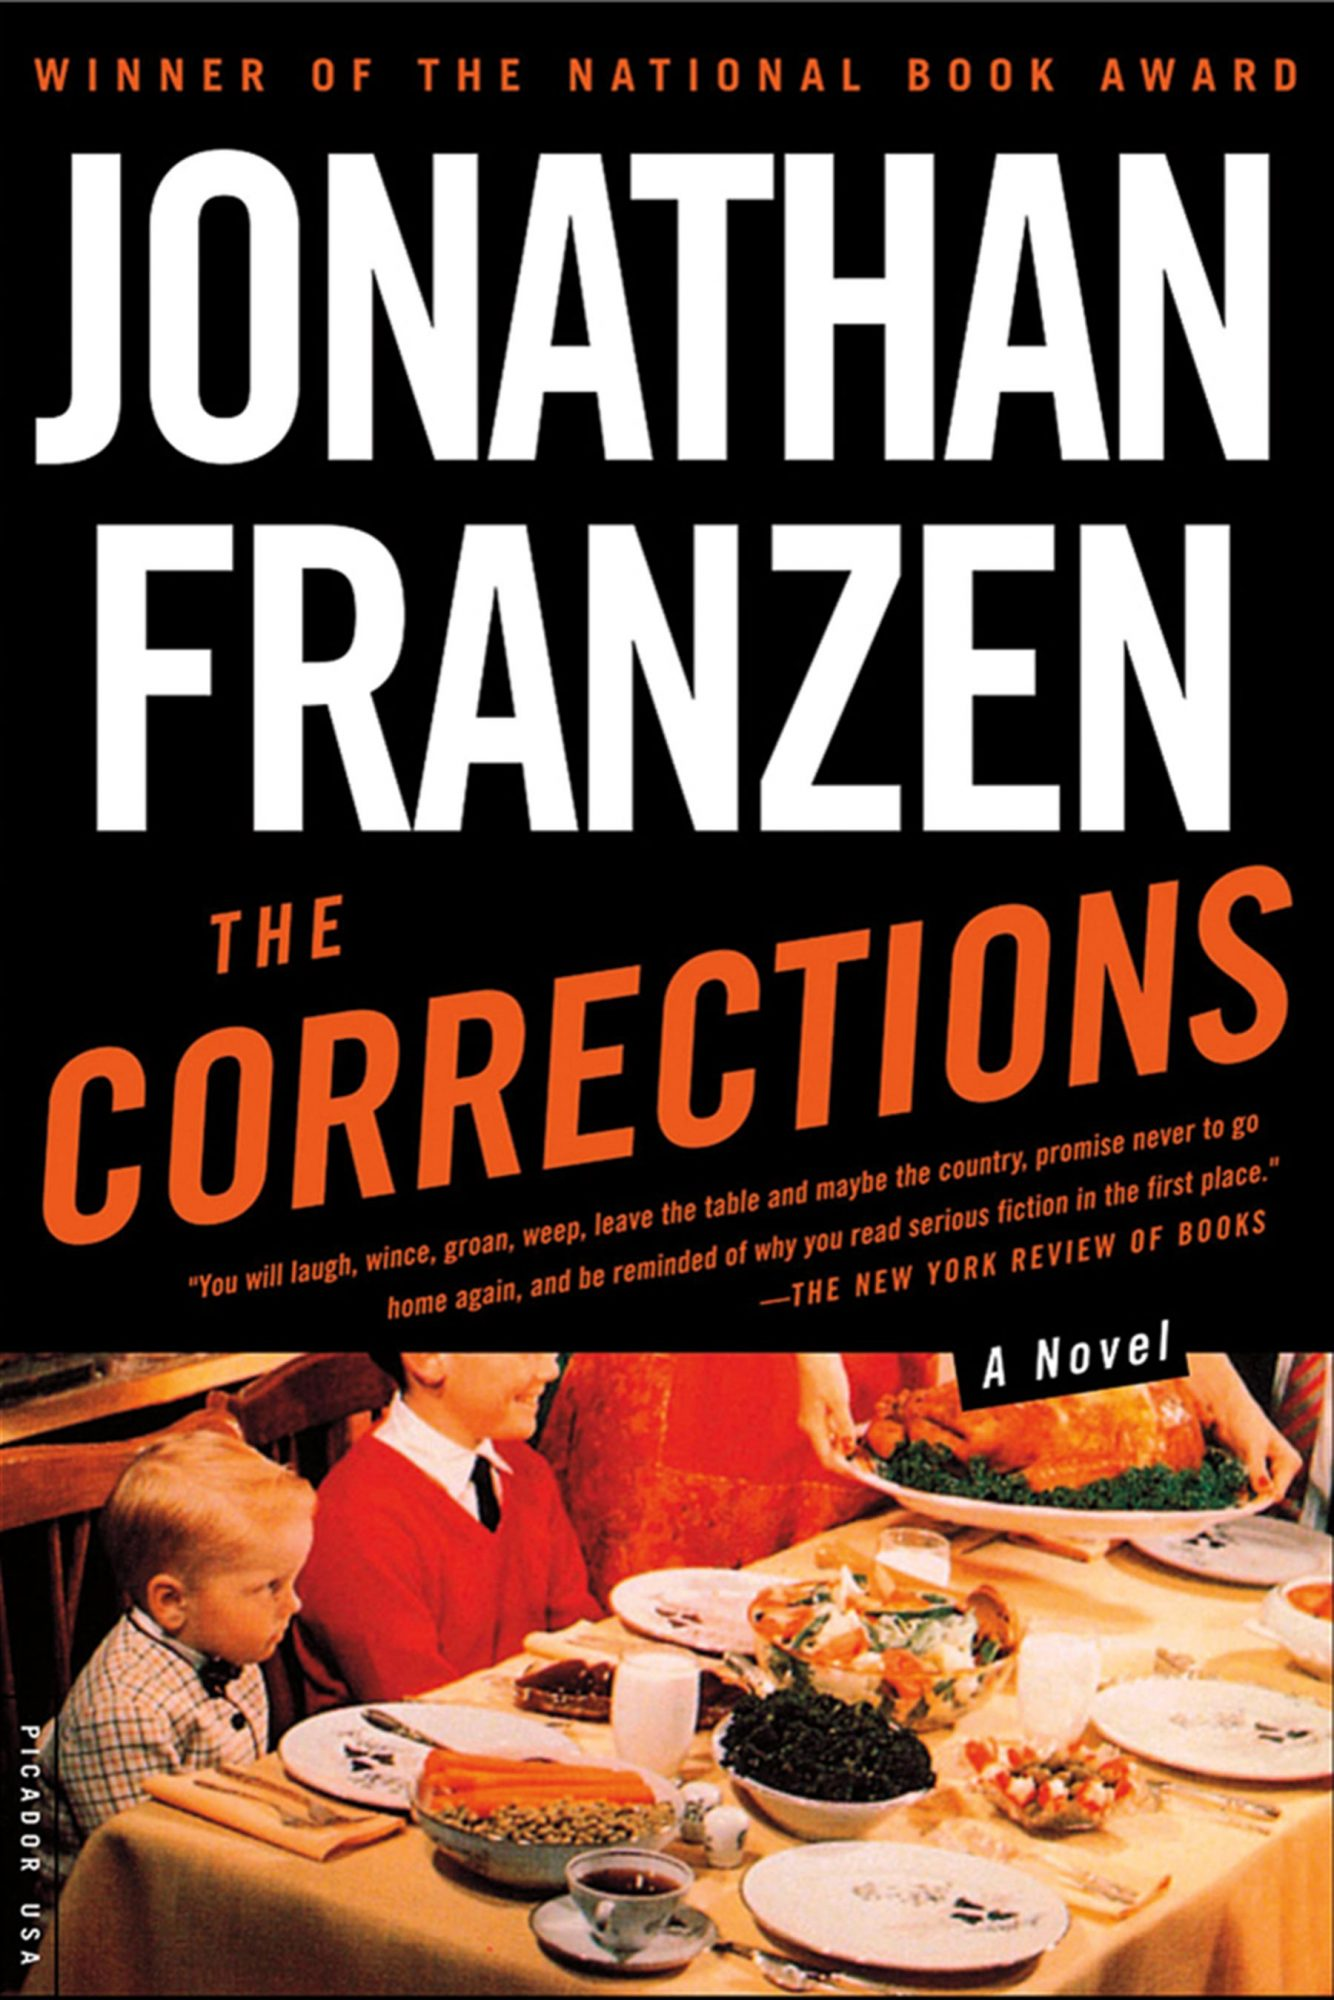 The Corrections  A Novel - paperback (8/27/2002)by Jonathan Franzen